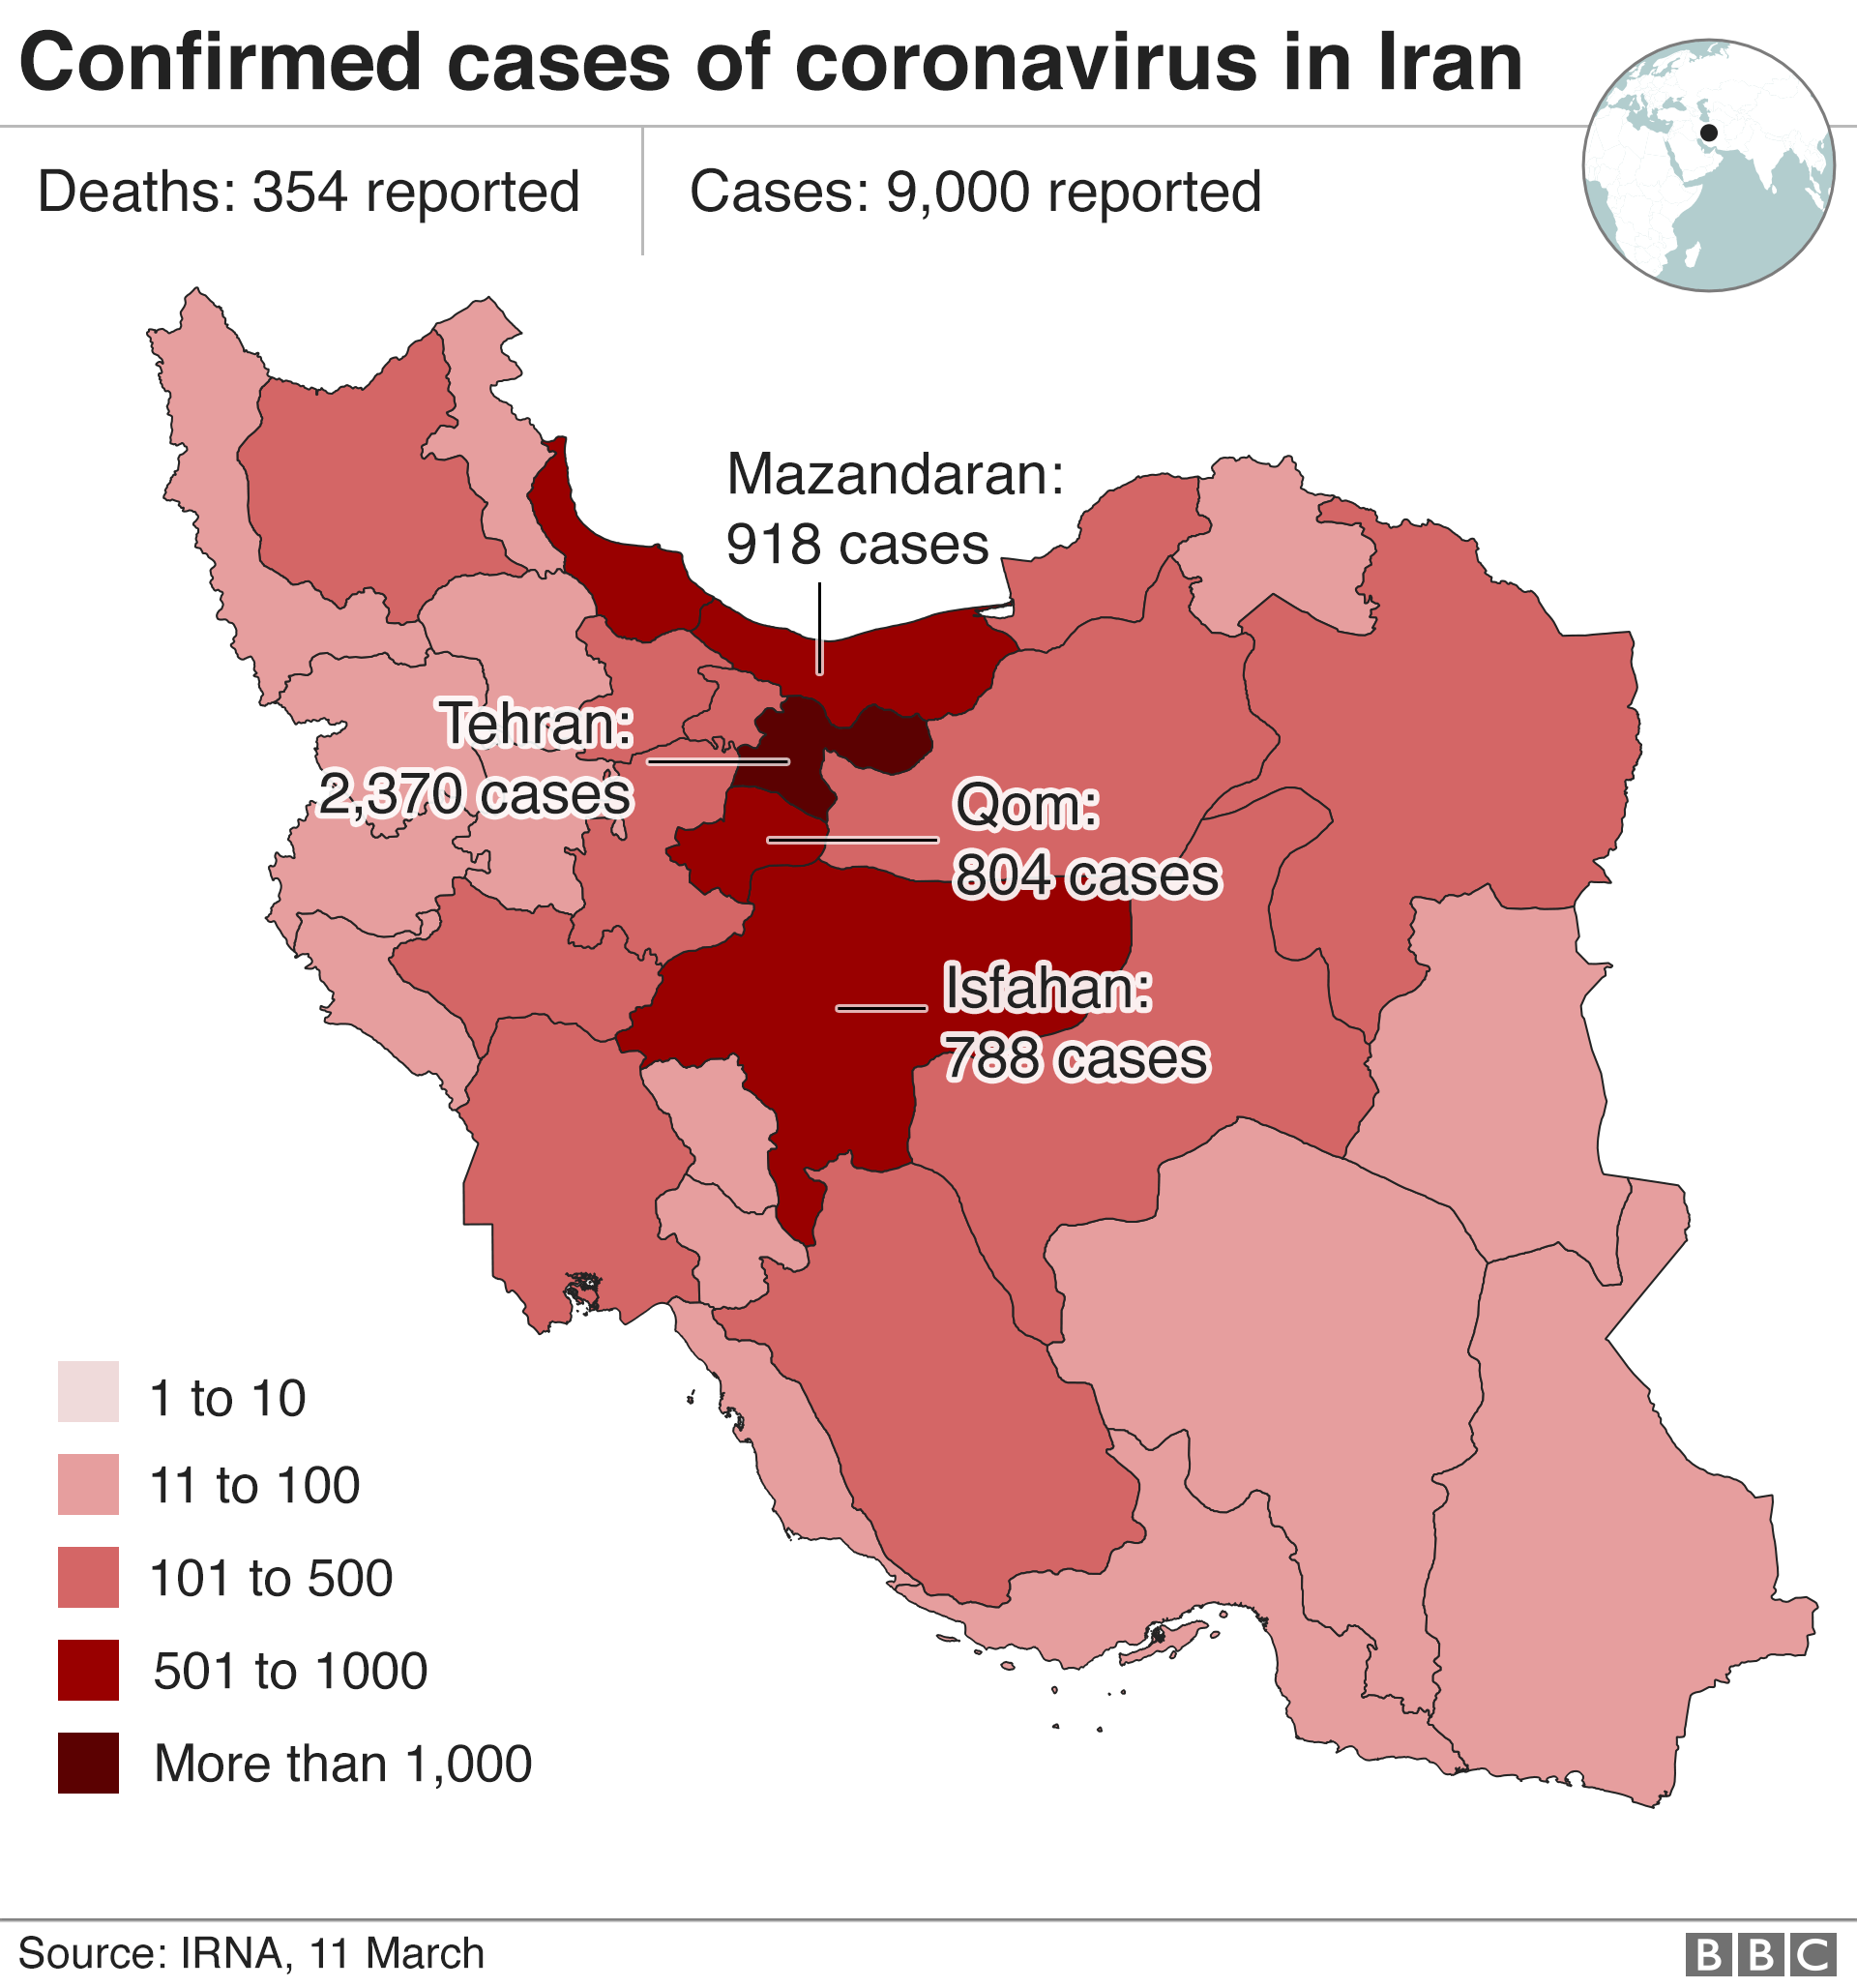 Map showing cases in Iran as of 11 March